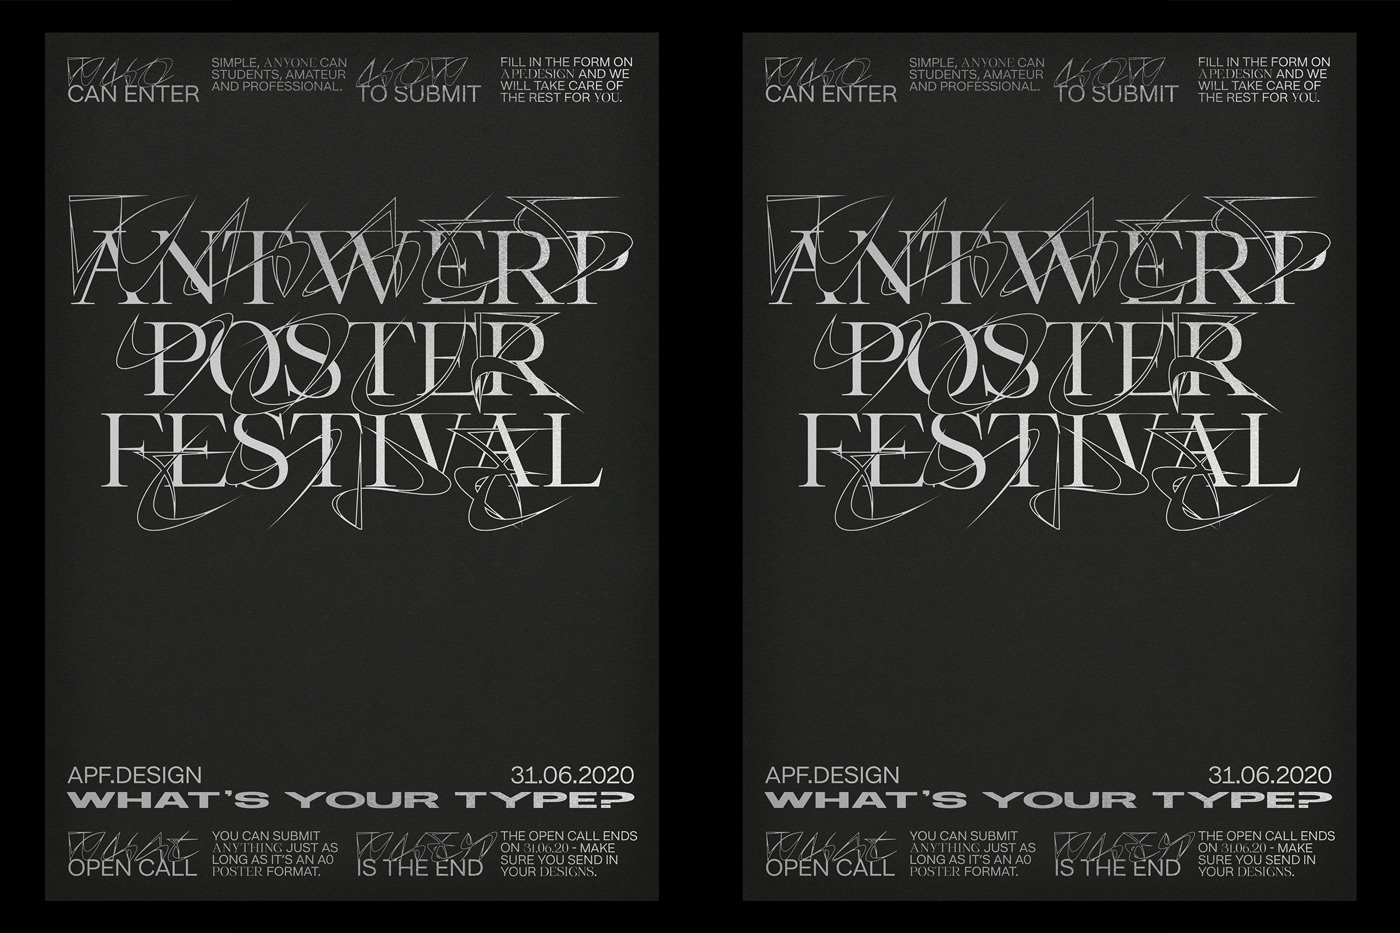 07 collide24 typelab studio ssnn antwerp poster festival - This year's identity of The Antwerp Poster Festival by ssnn and Typelab showcases experimental type design